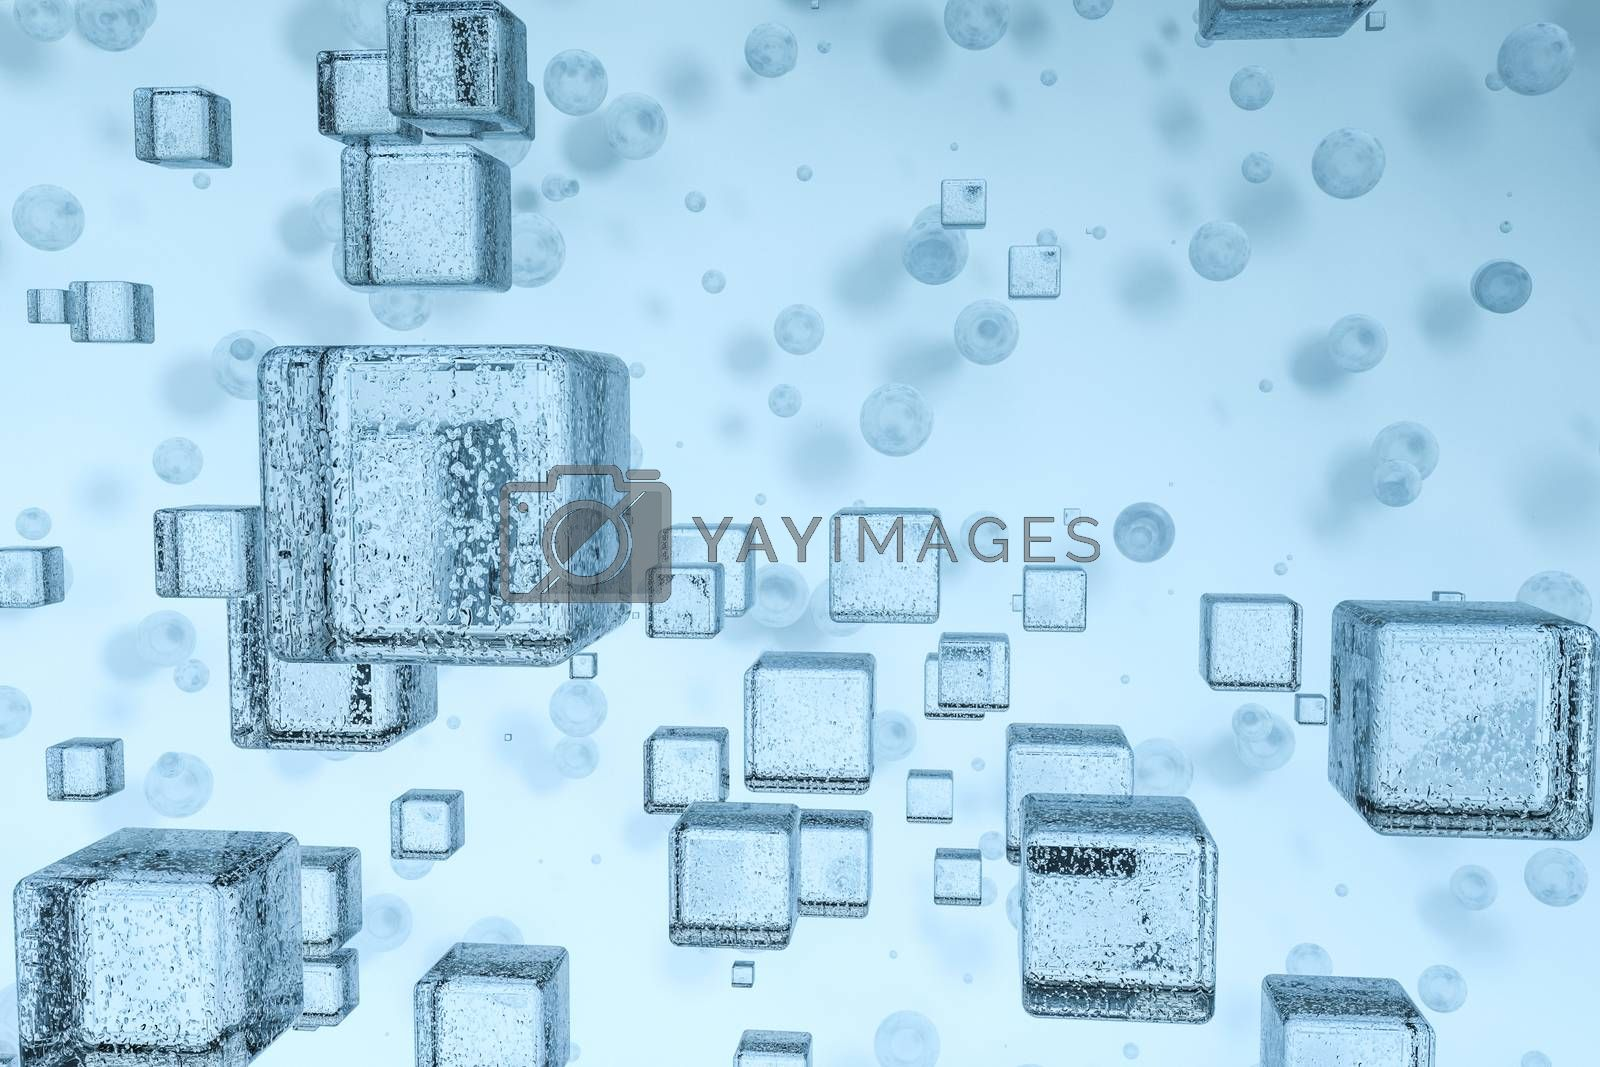 3d rendering, drop of water with light blue background by vinkfan